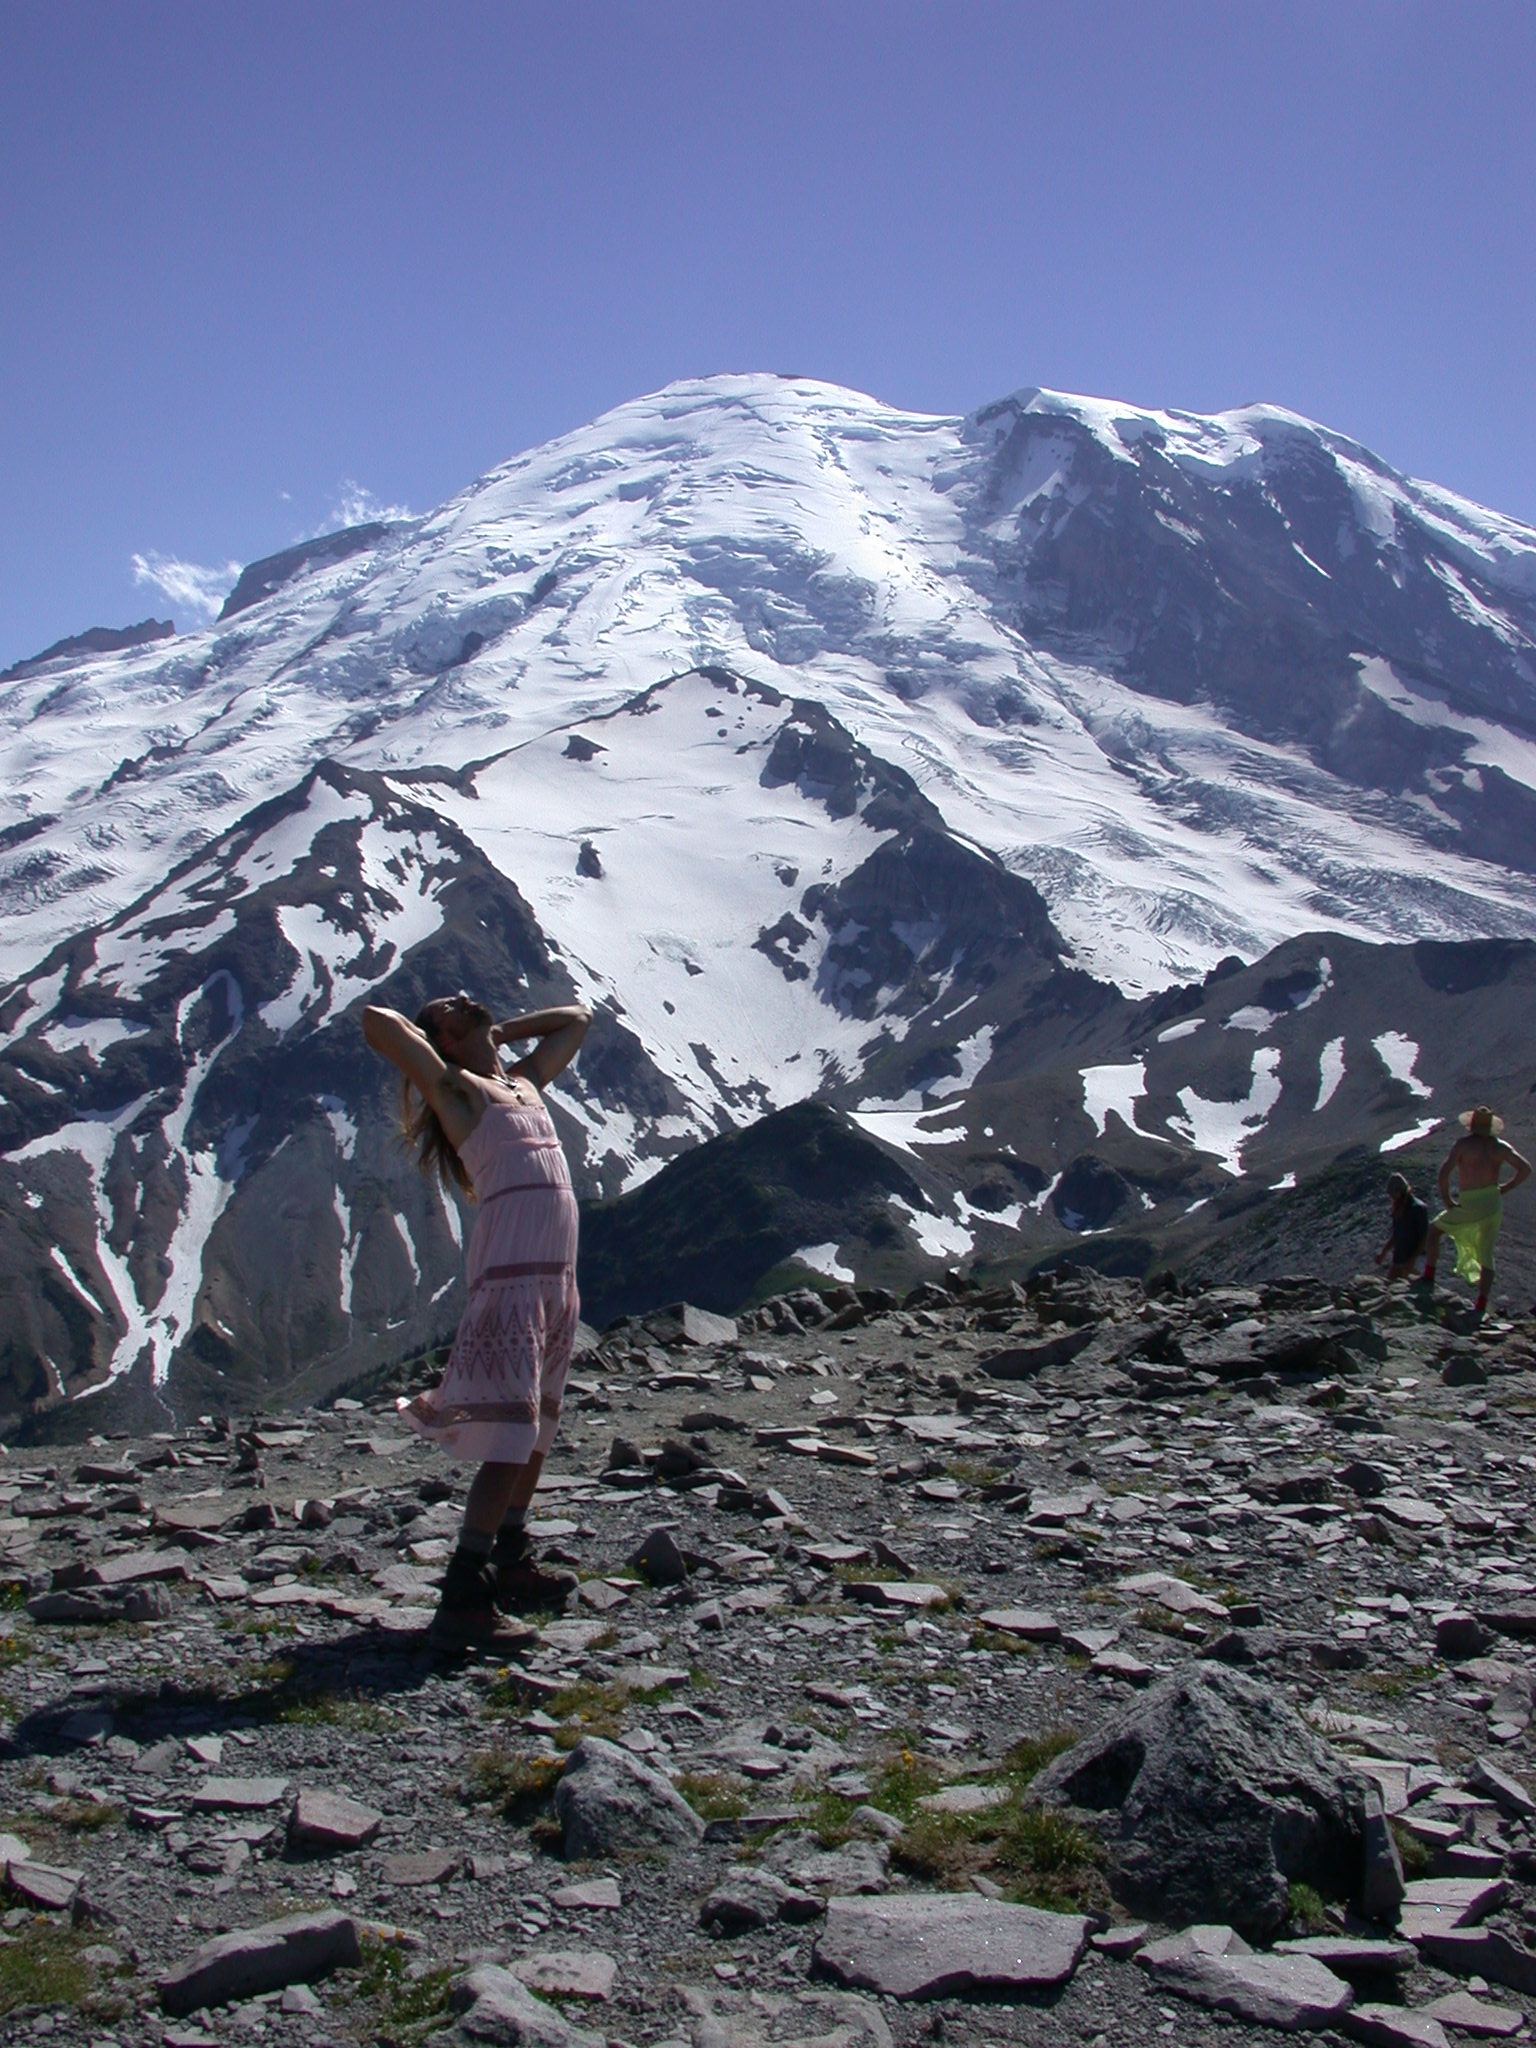 Fruitboy in Dress Takes It All In on Burroughs Peak II of Mount Rainier